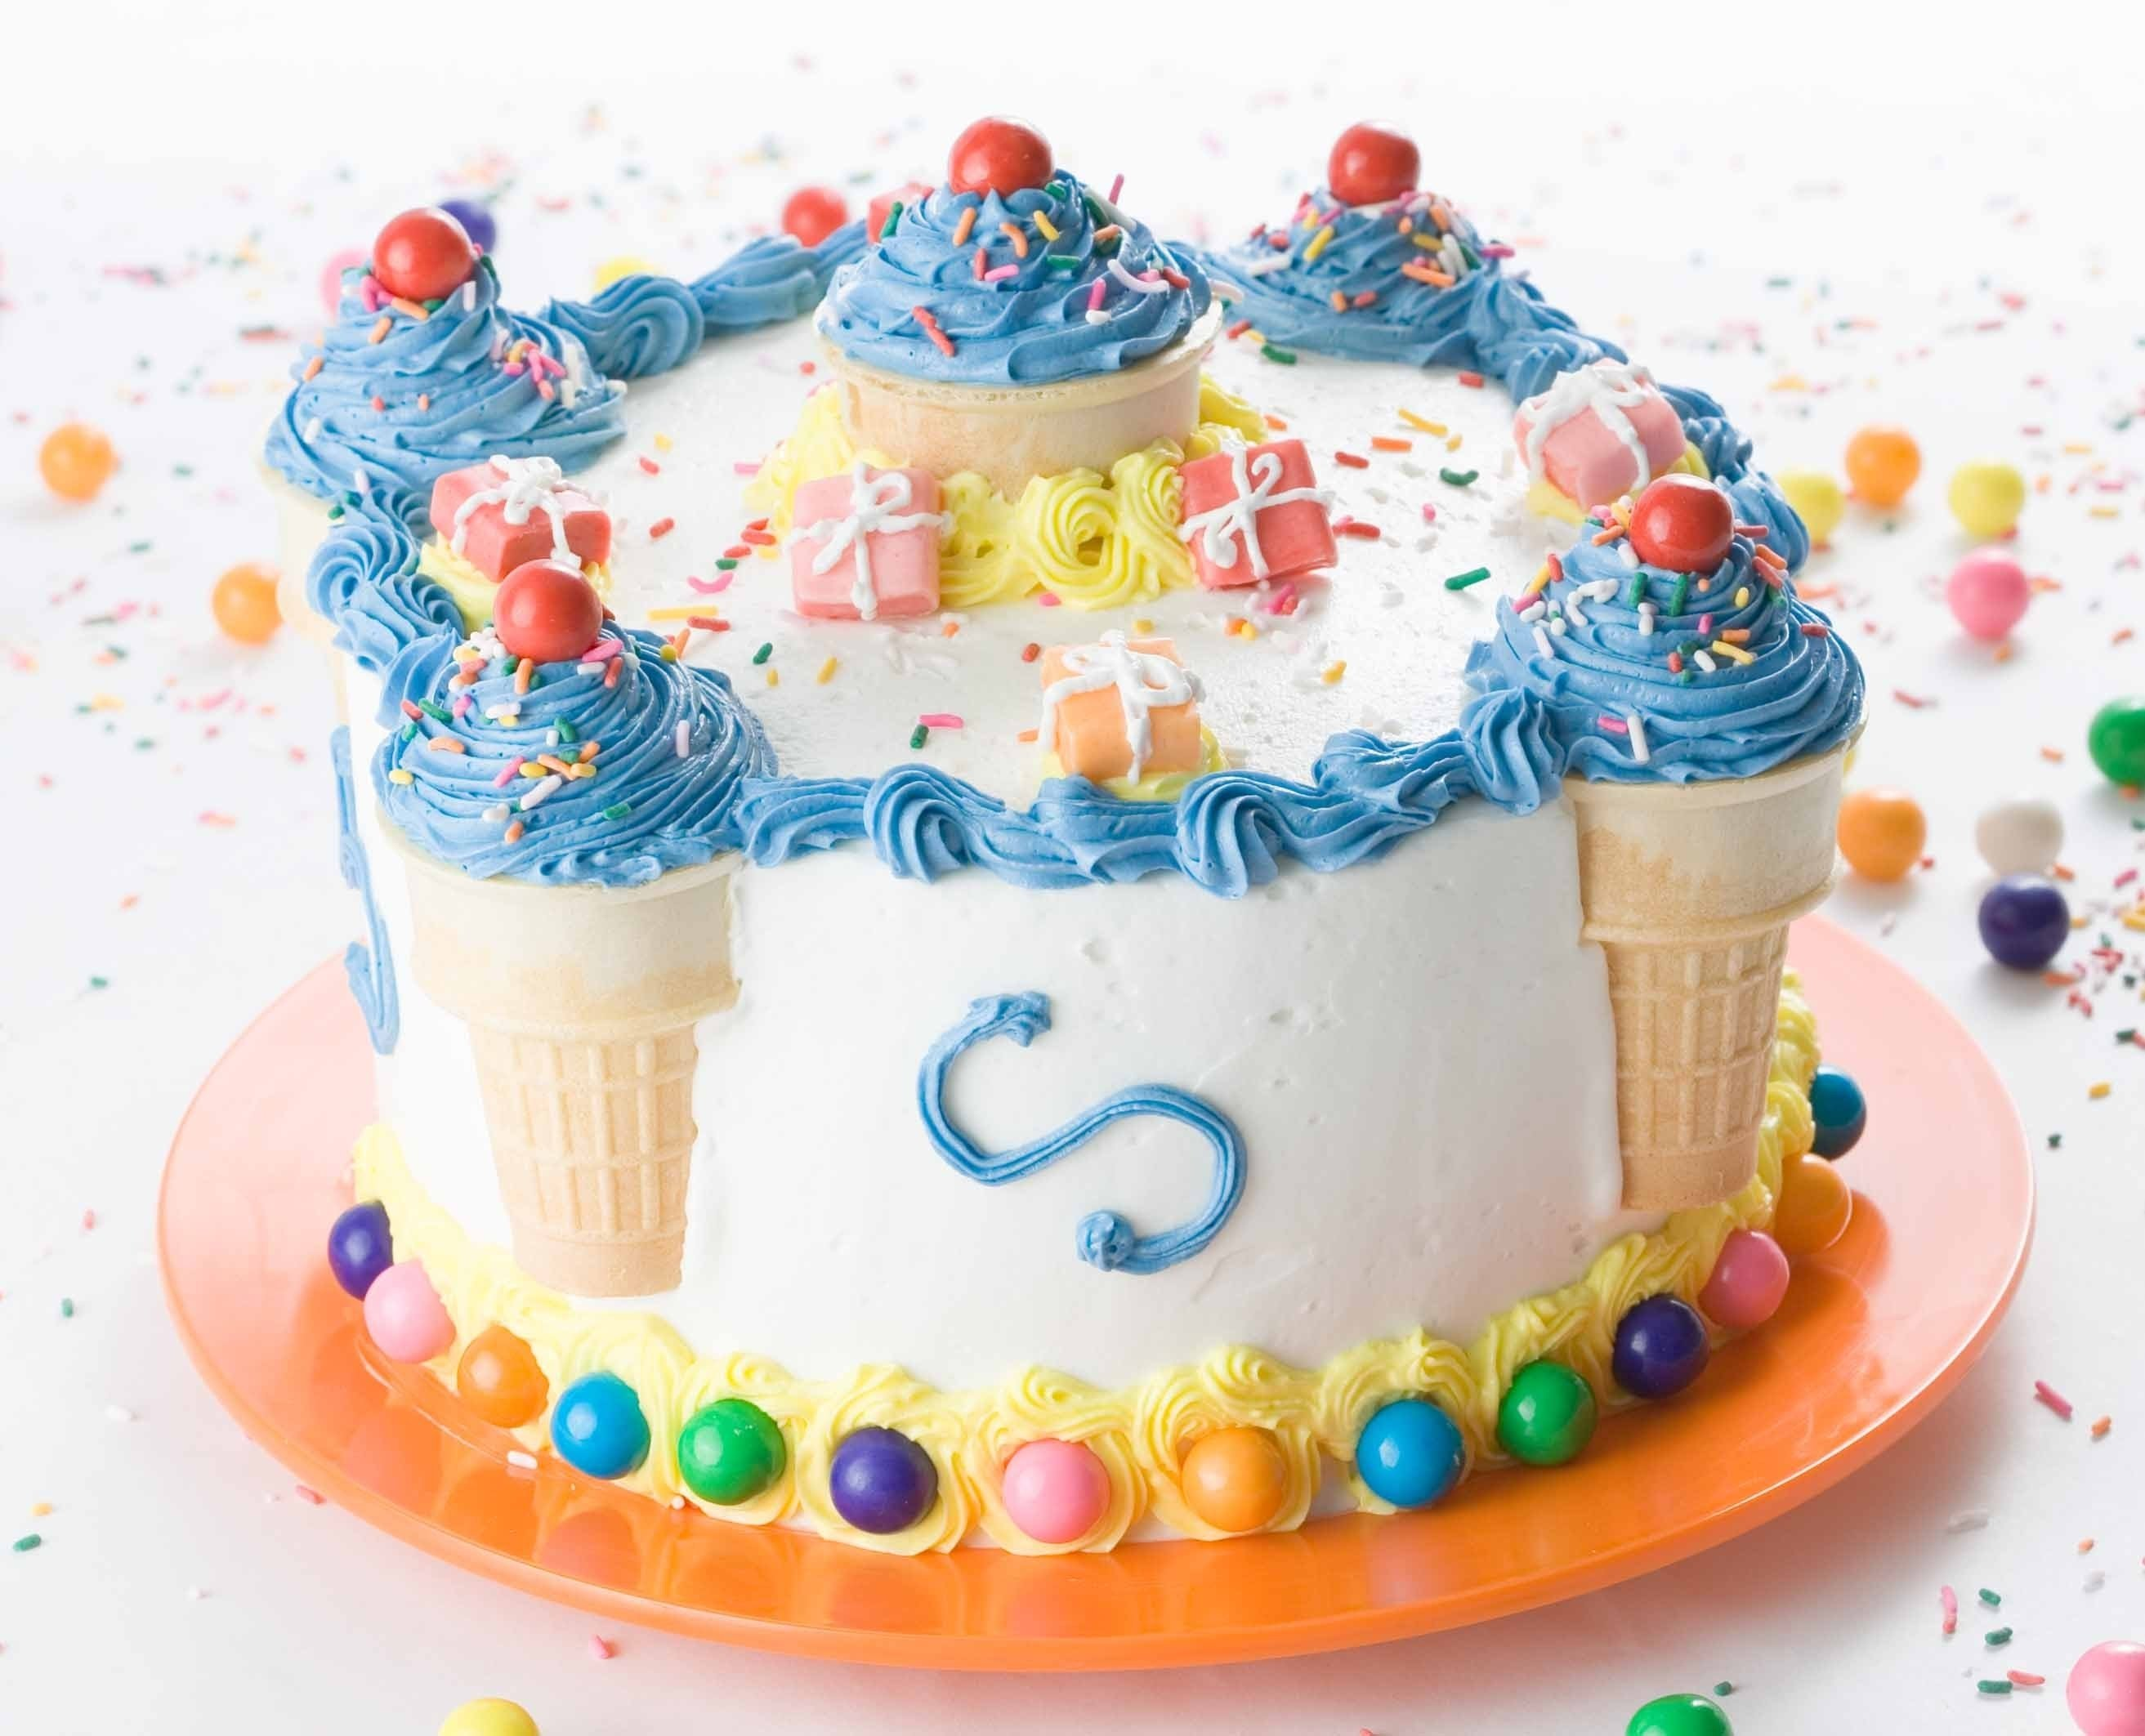 10 Elegant 12 Year Old Birthday Cake Ideas decorate a birthday cake in minutes youtube